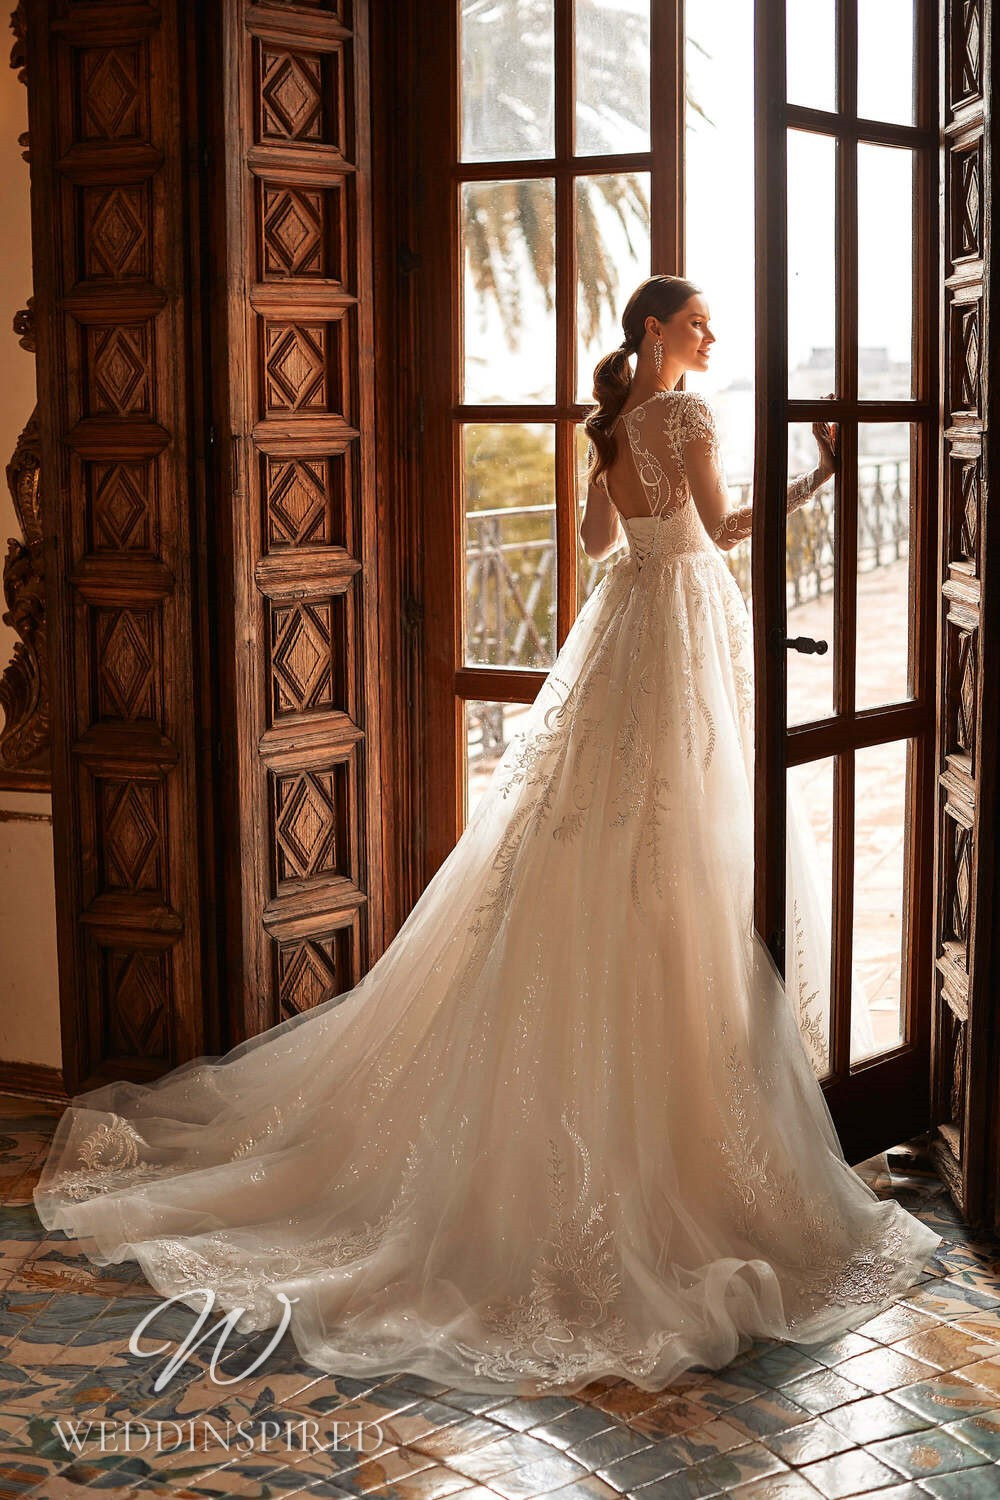 A Royal by Naviblue 2021 lace and tulle princess wedding dress with long sleeves